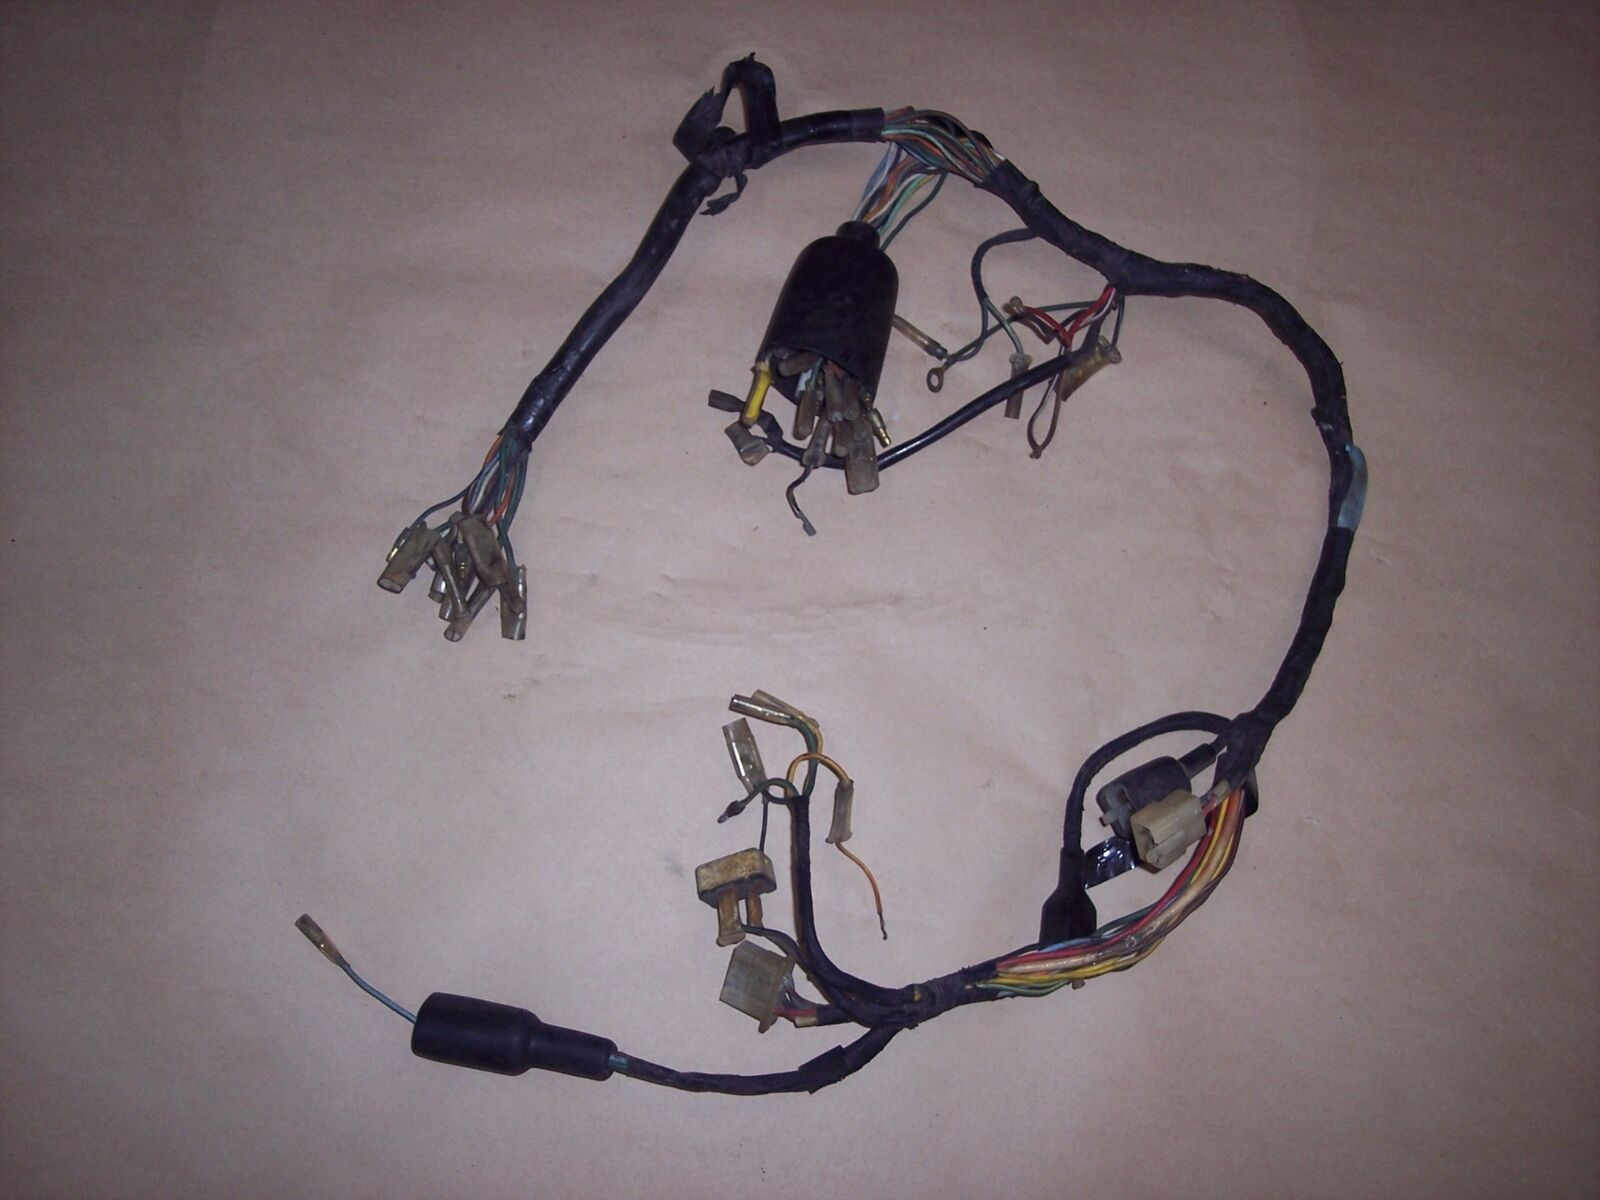 hight resolution of 75 honda cb360 cb 360 oem wire harness wiring loom electrical for sale online ebay